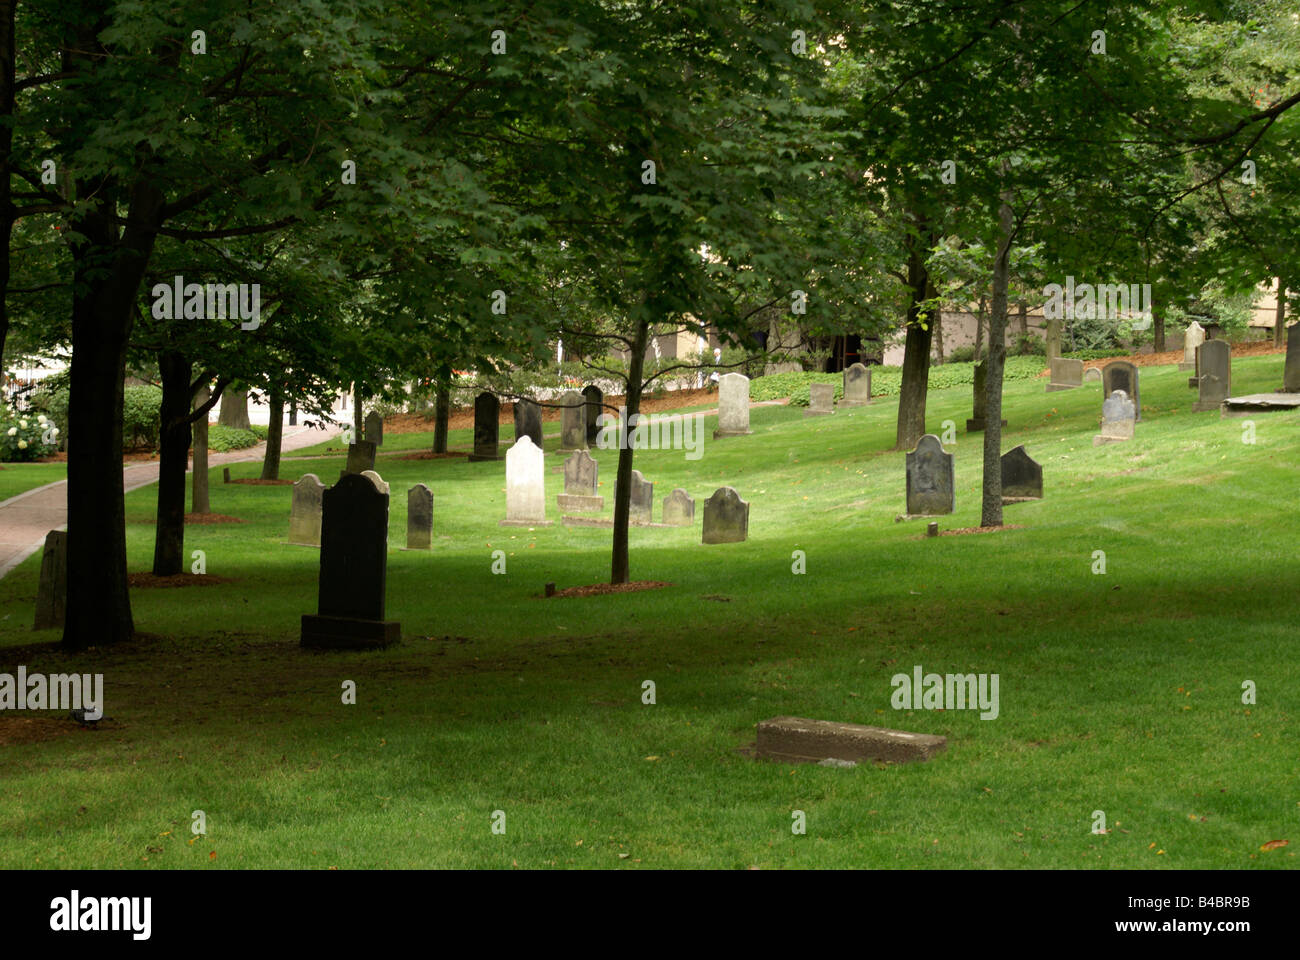 Graves of United Empire Loyalists in the Loyalist Burial Ground in the city of Saint John, New Brunswick, Canada - Stock Image